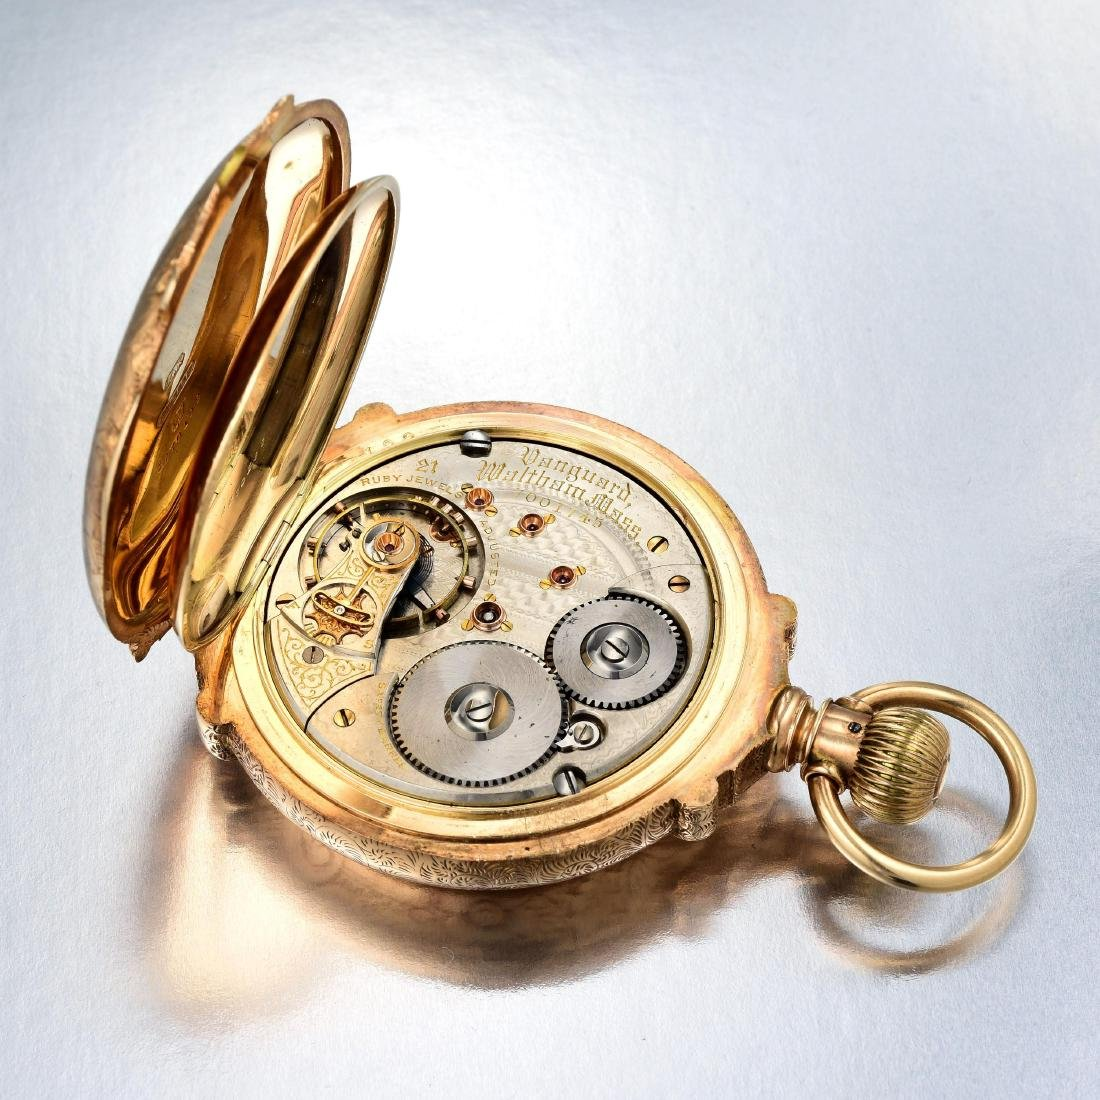 Waltham Antique Pocket Watch with 14K Gold Hunter Case - 4